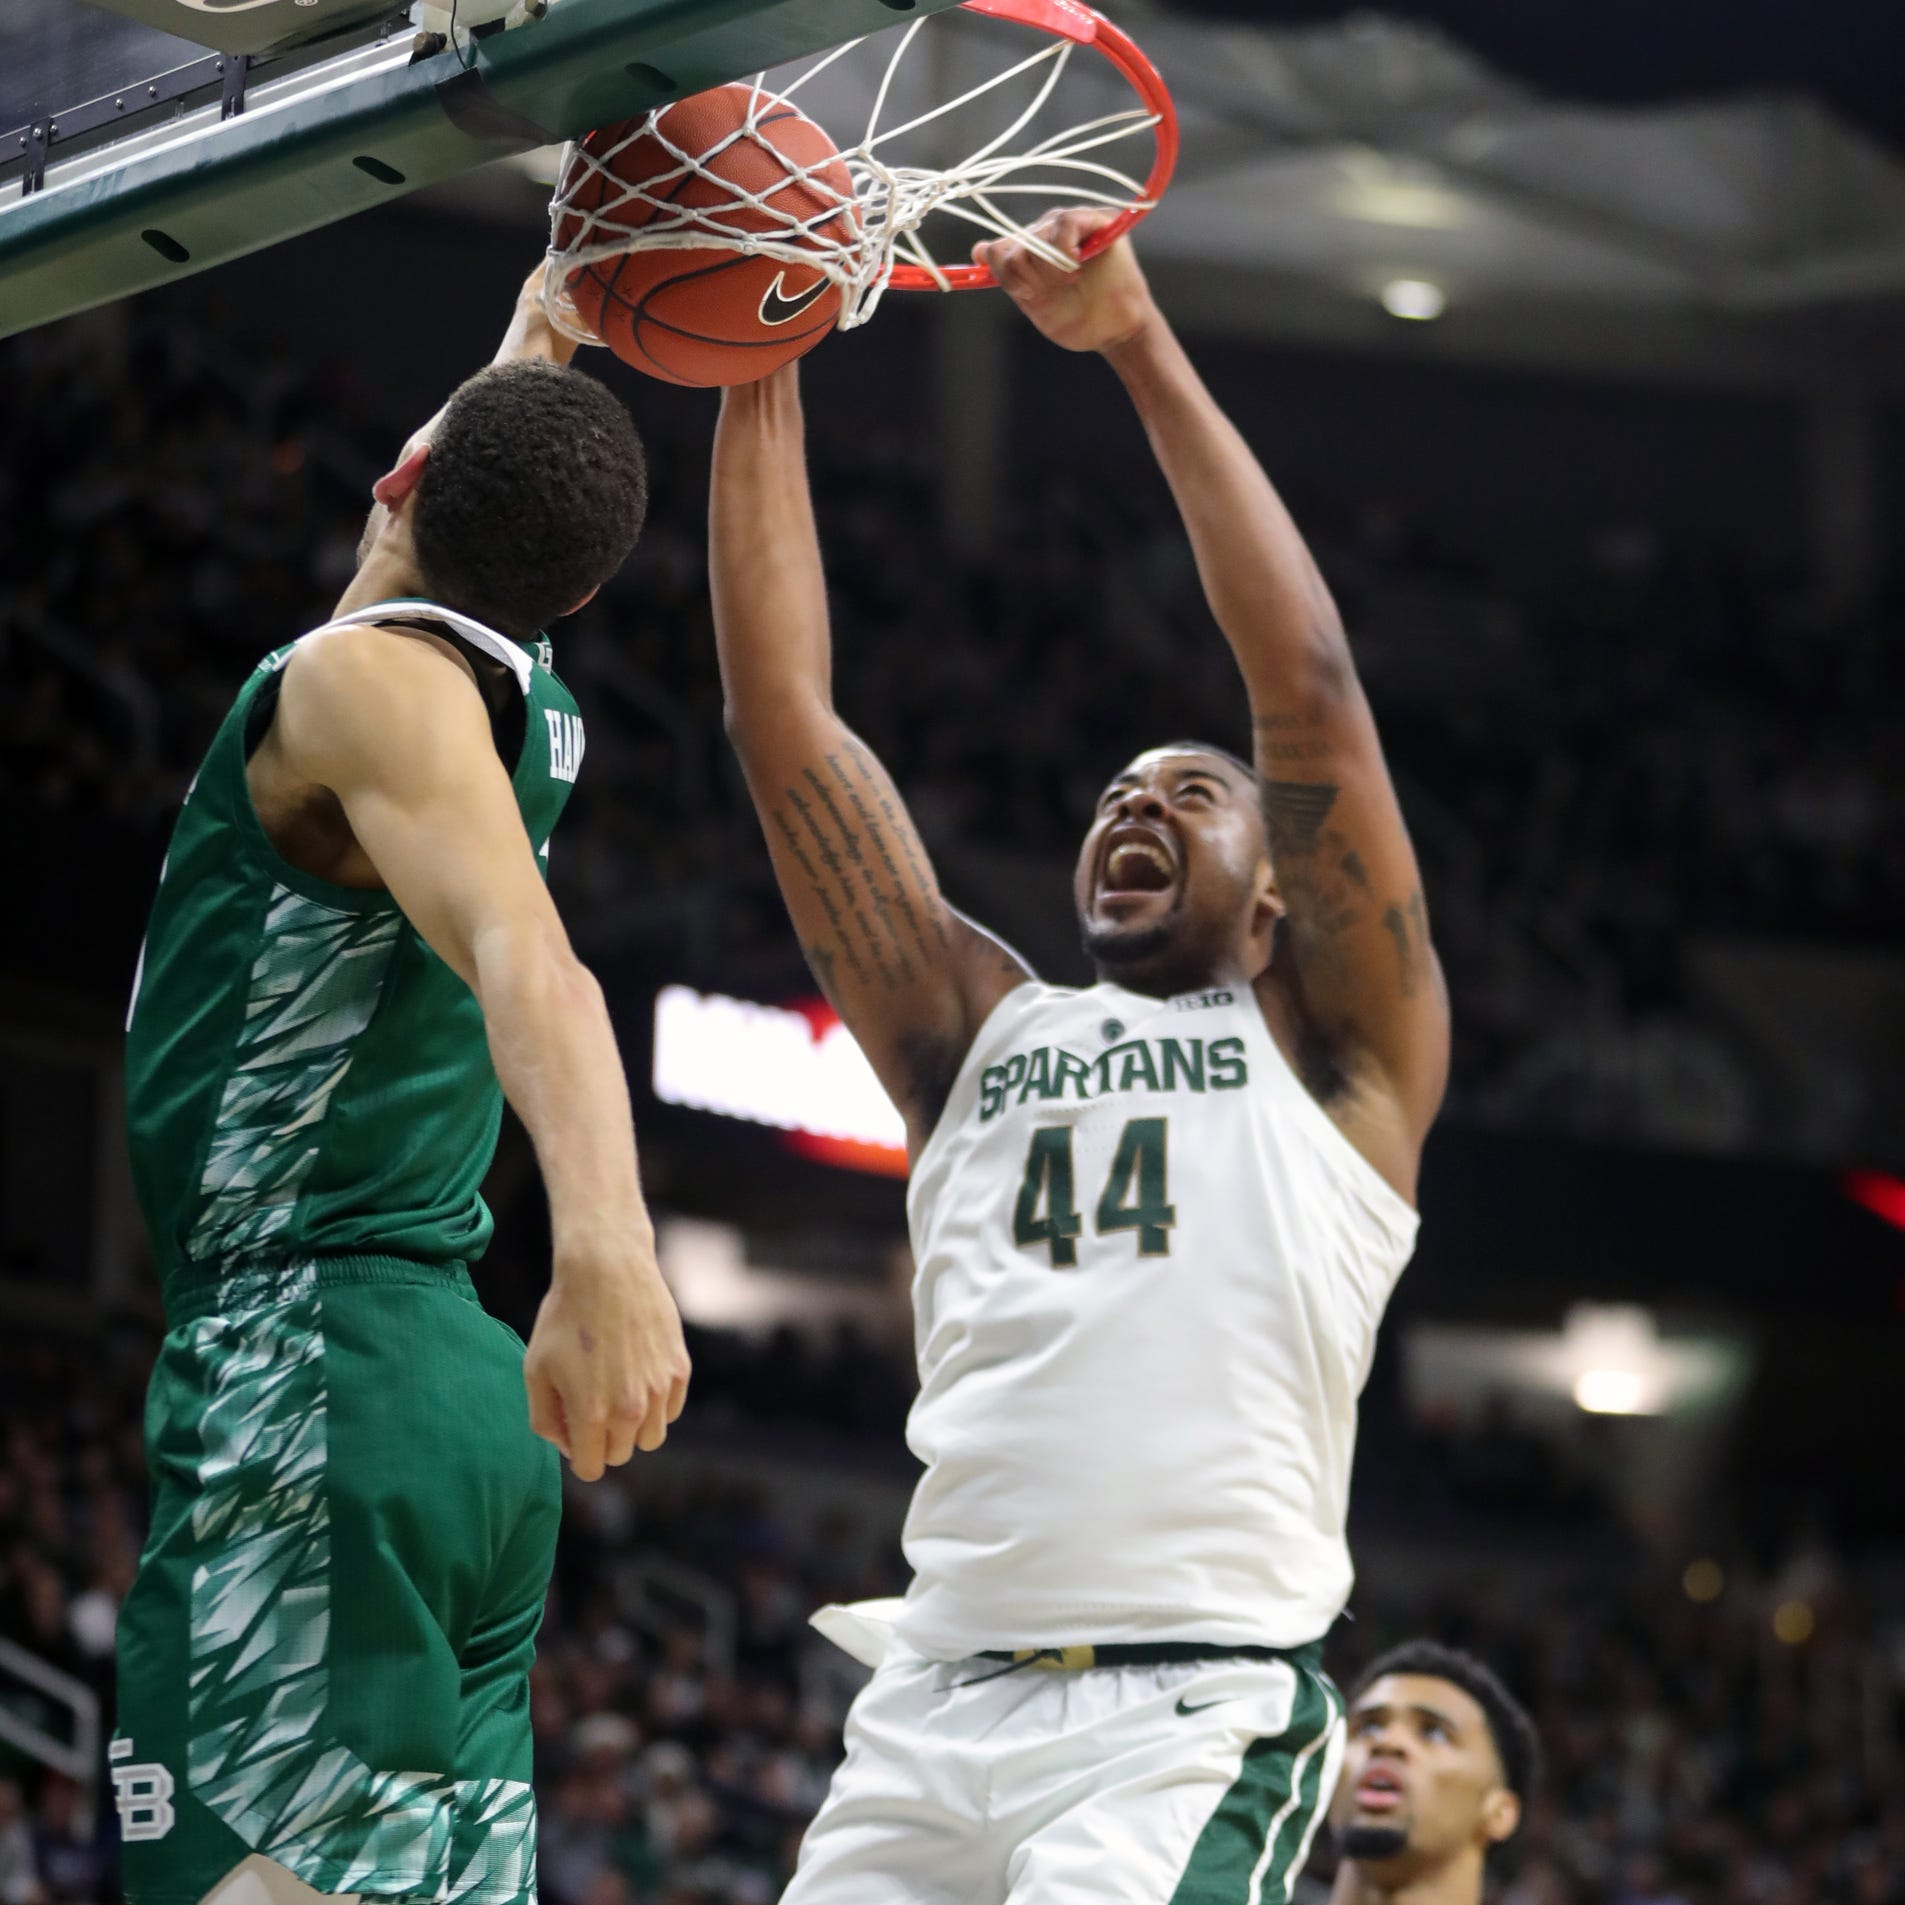 Michigan State basketball scorches Green Bay, 104-83, led by Nick Ward